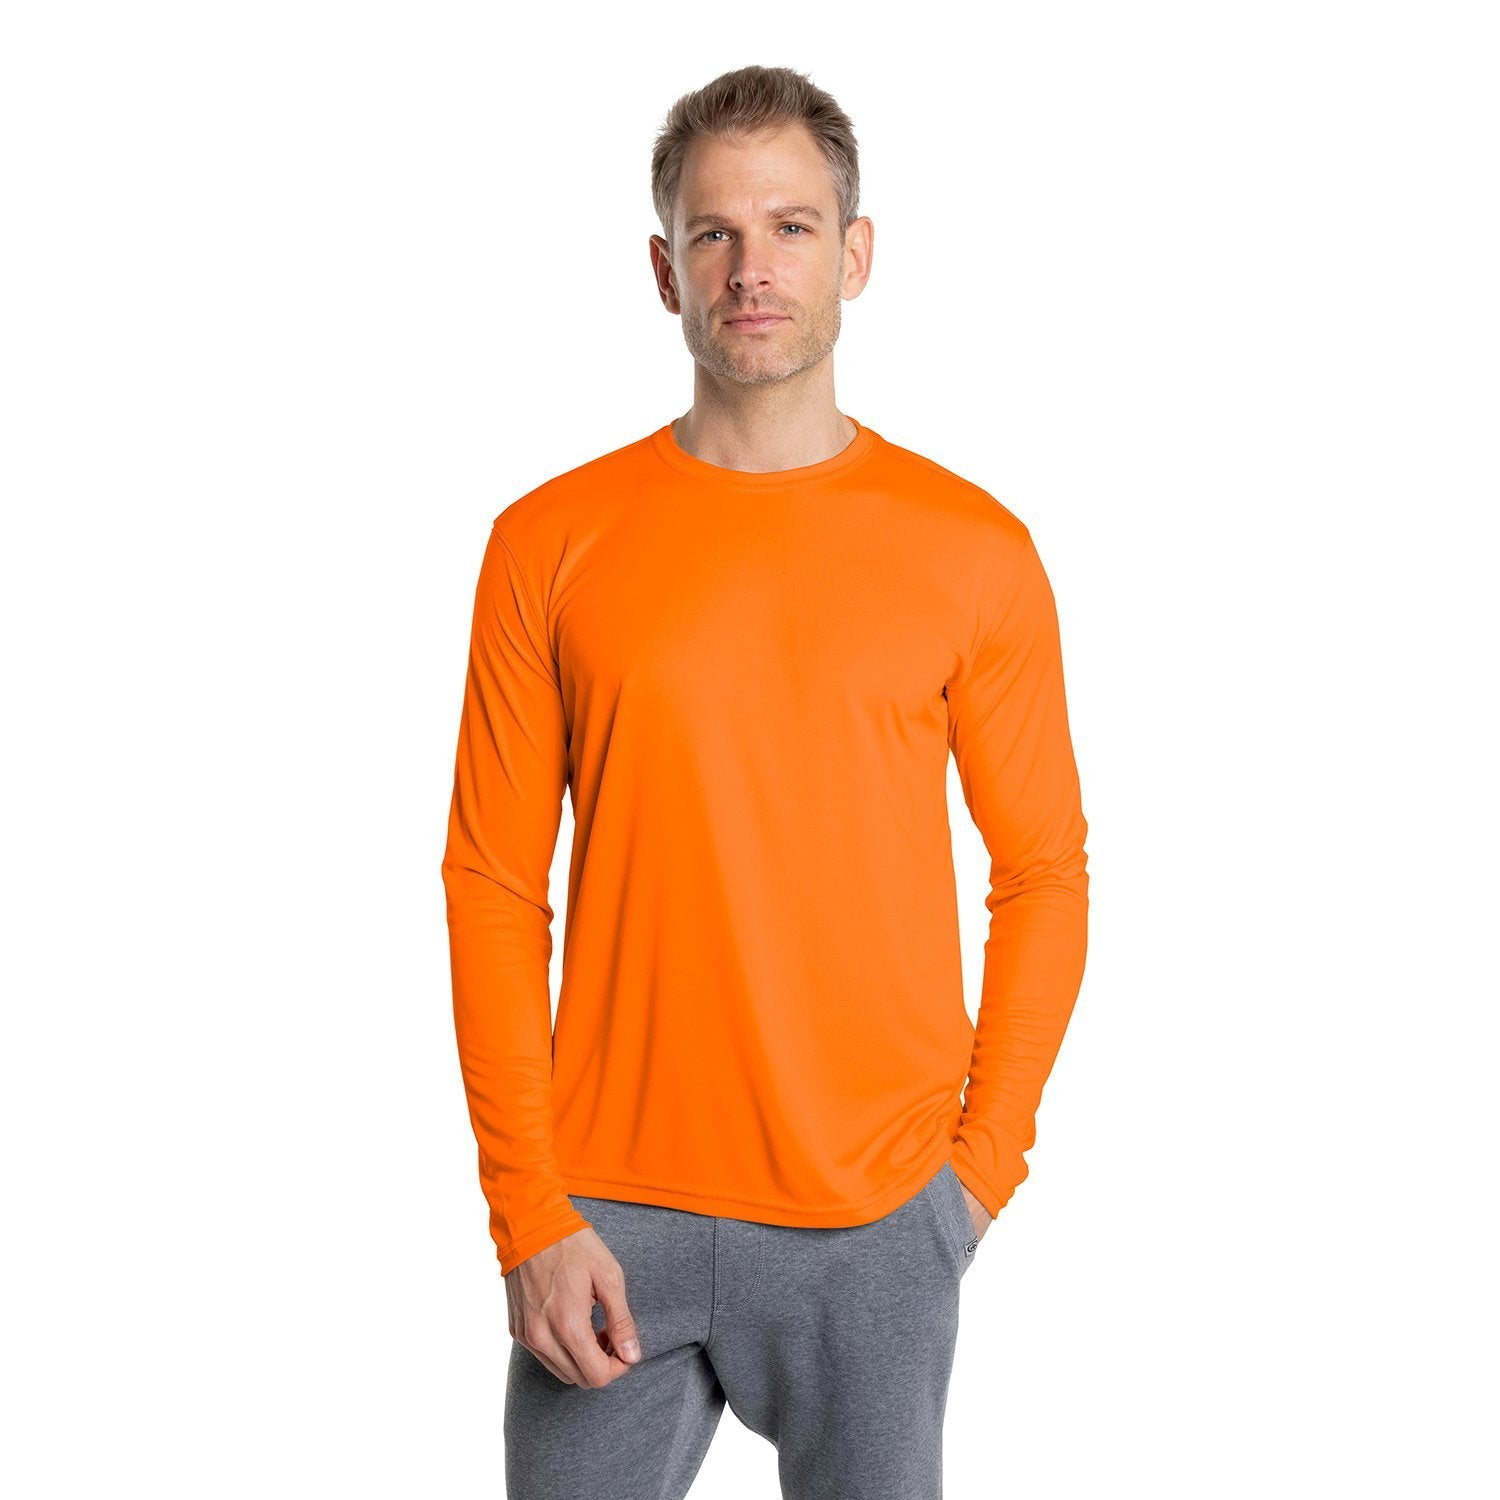 M700SO Solar Long Sleeve - Safety Orange